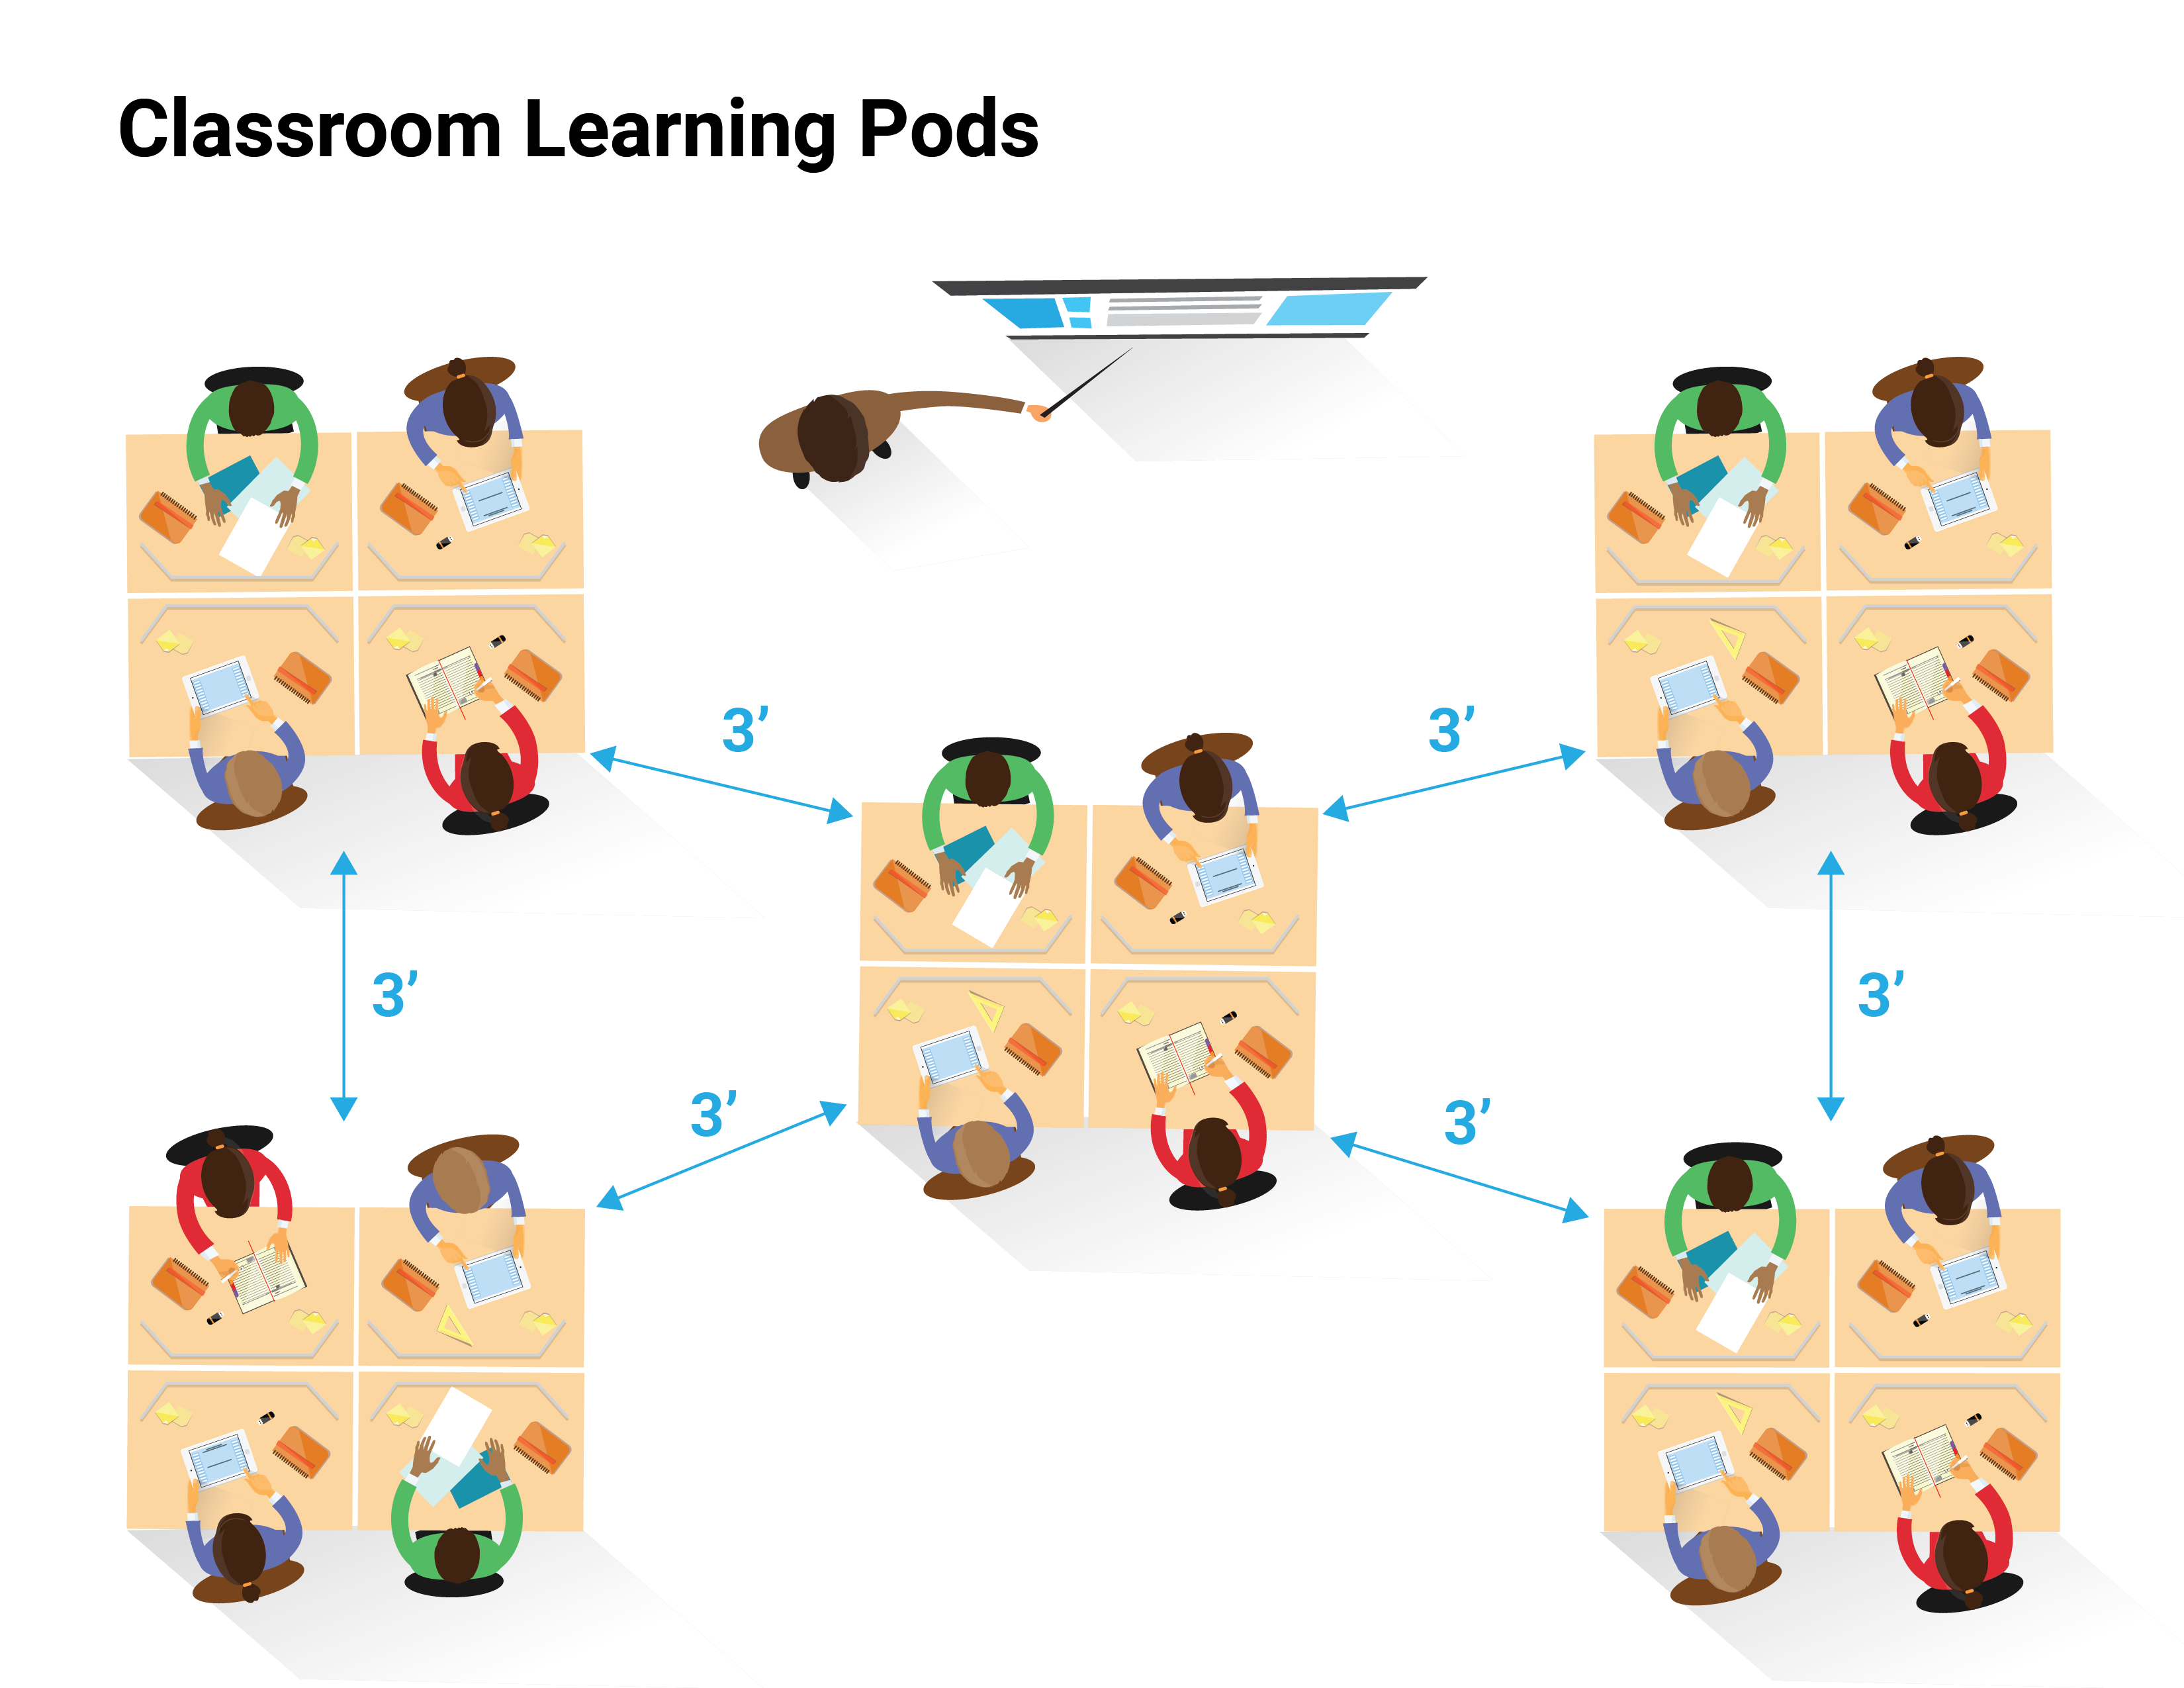 Classroom Learning Pod Diagram showing how groups of children remain 3 feet apart